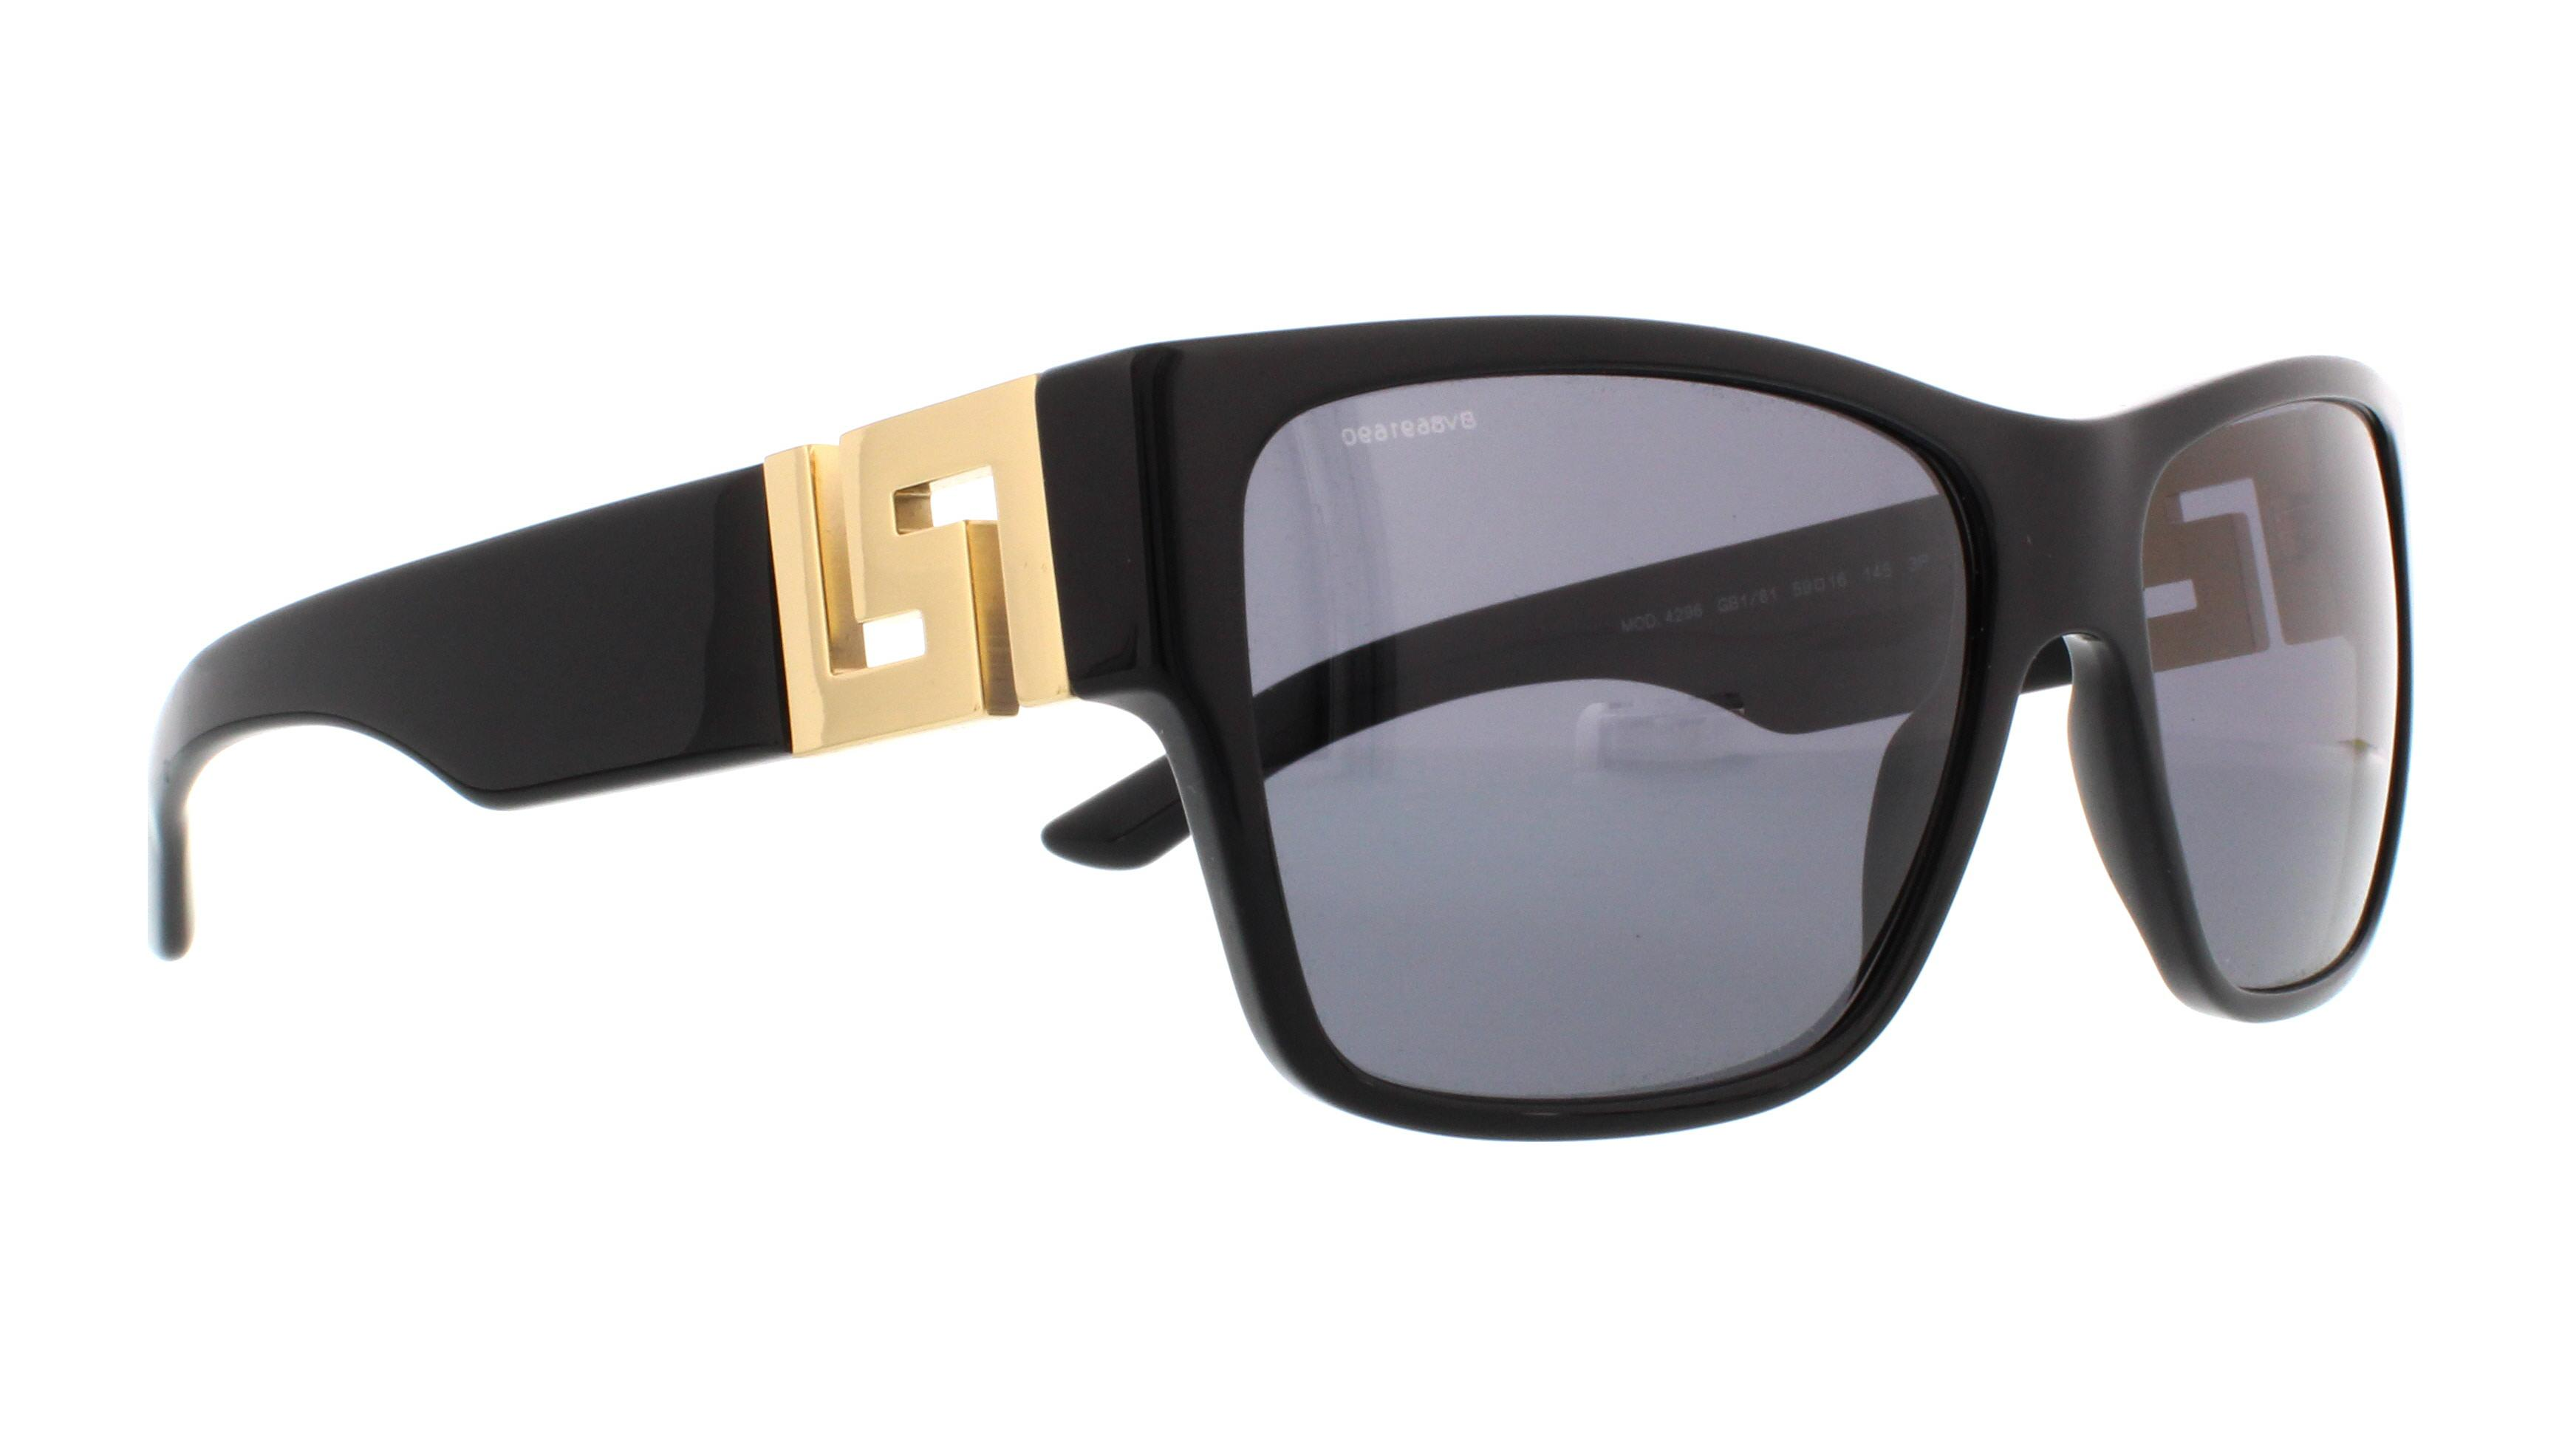 eb8a6948b7 Versace - VERSACE Sunglasses VE4296 GB1 81 Black 59MM - Walmart.com